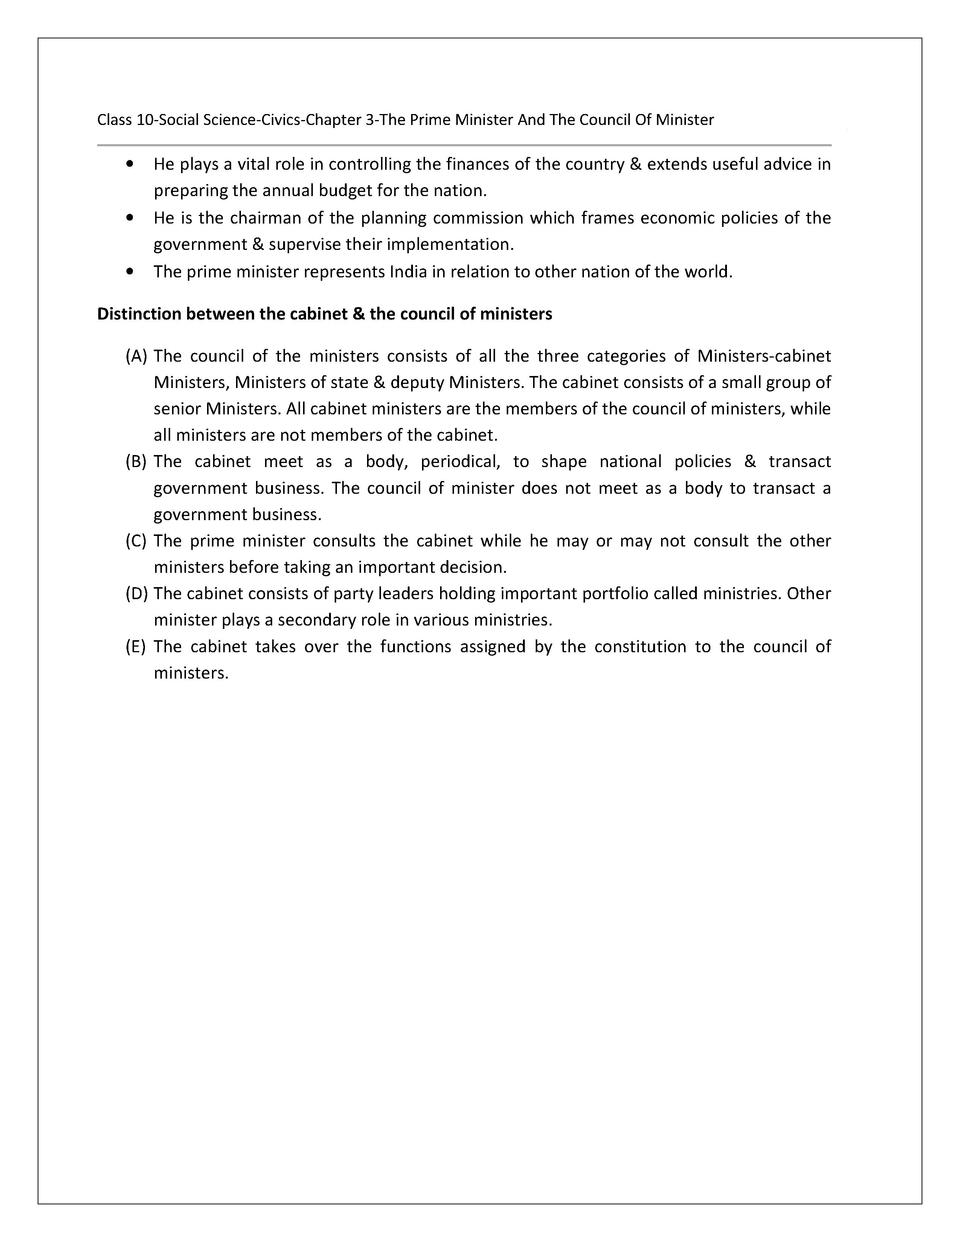 Cabinet Minister Definition - Page 2 - azontreasures.com